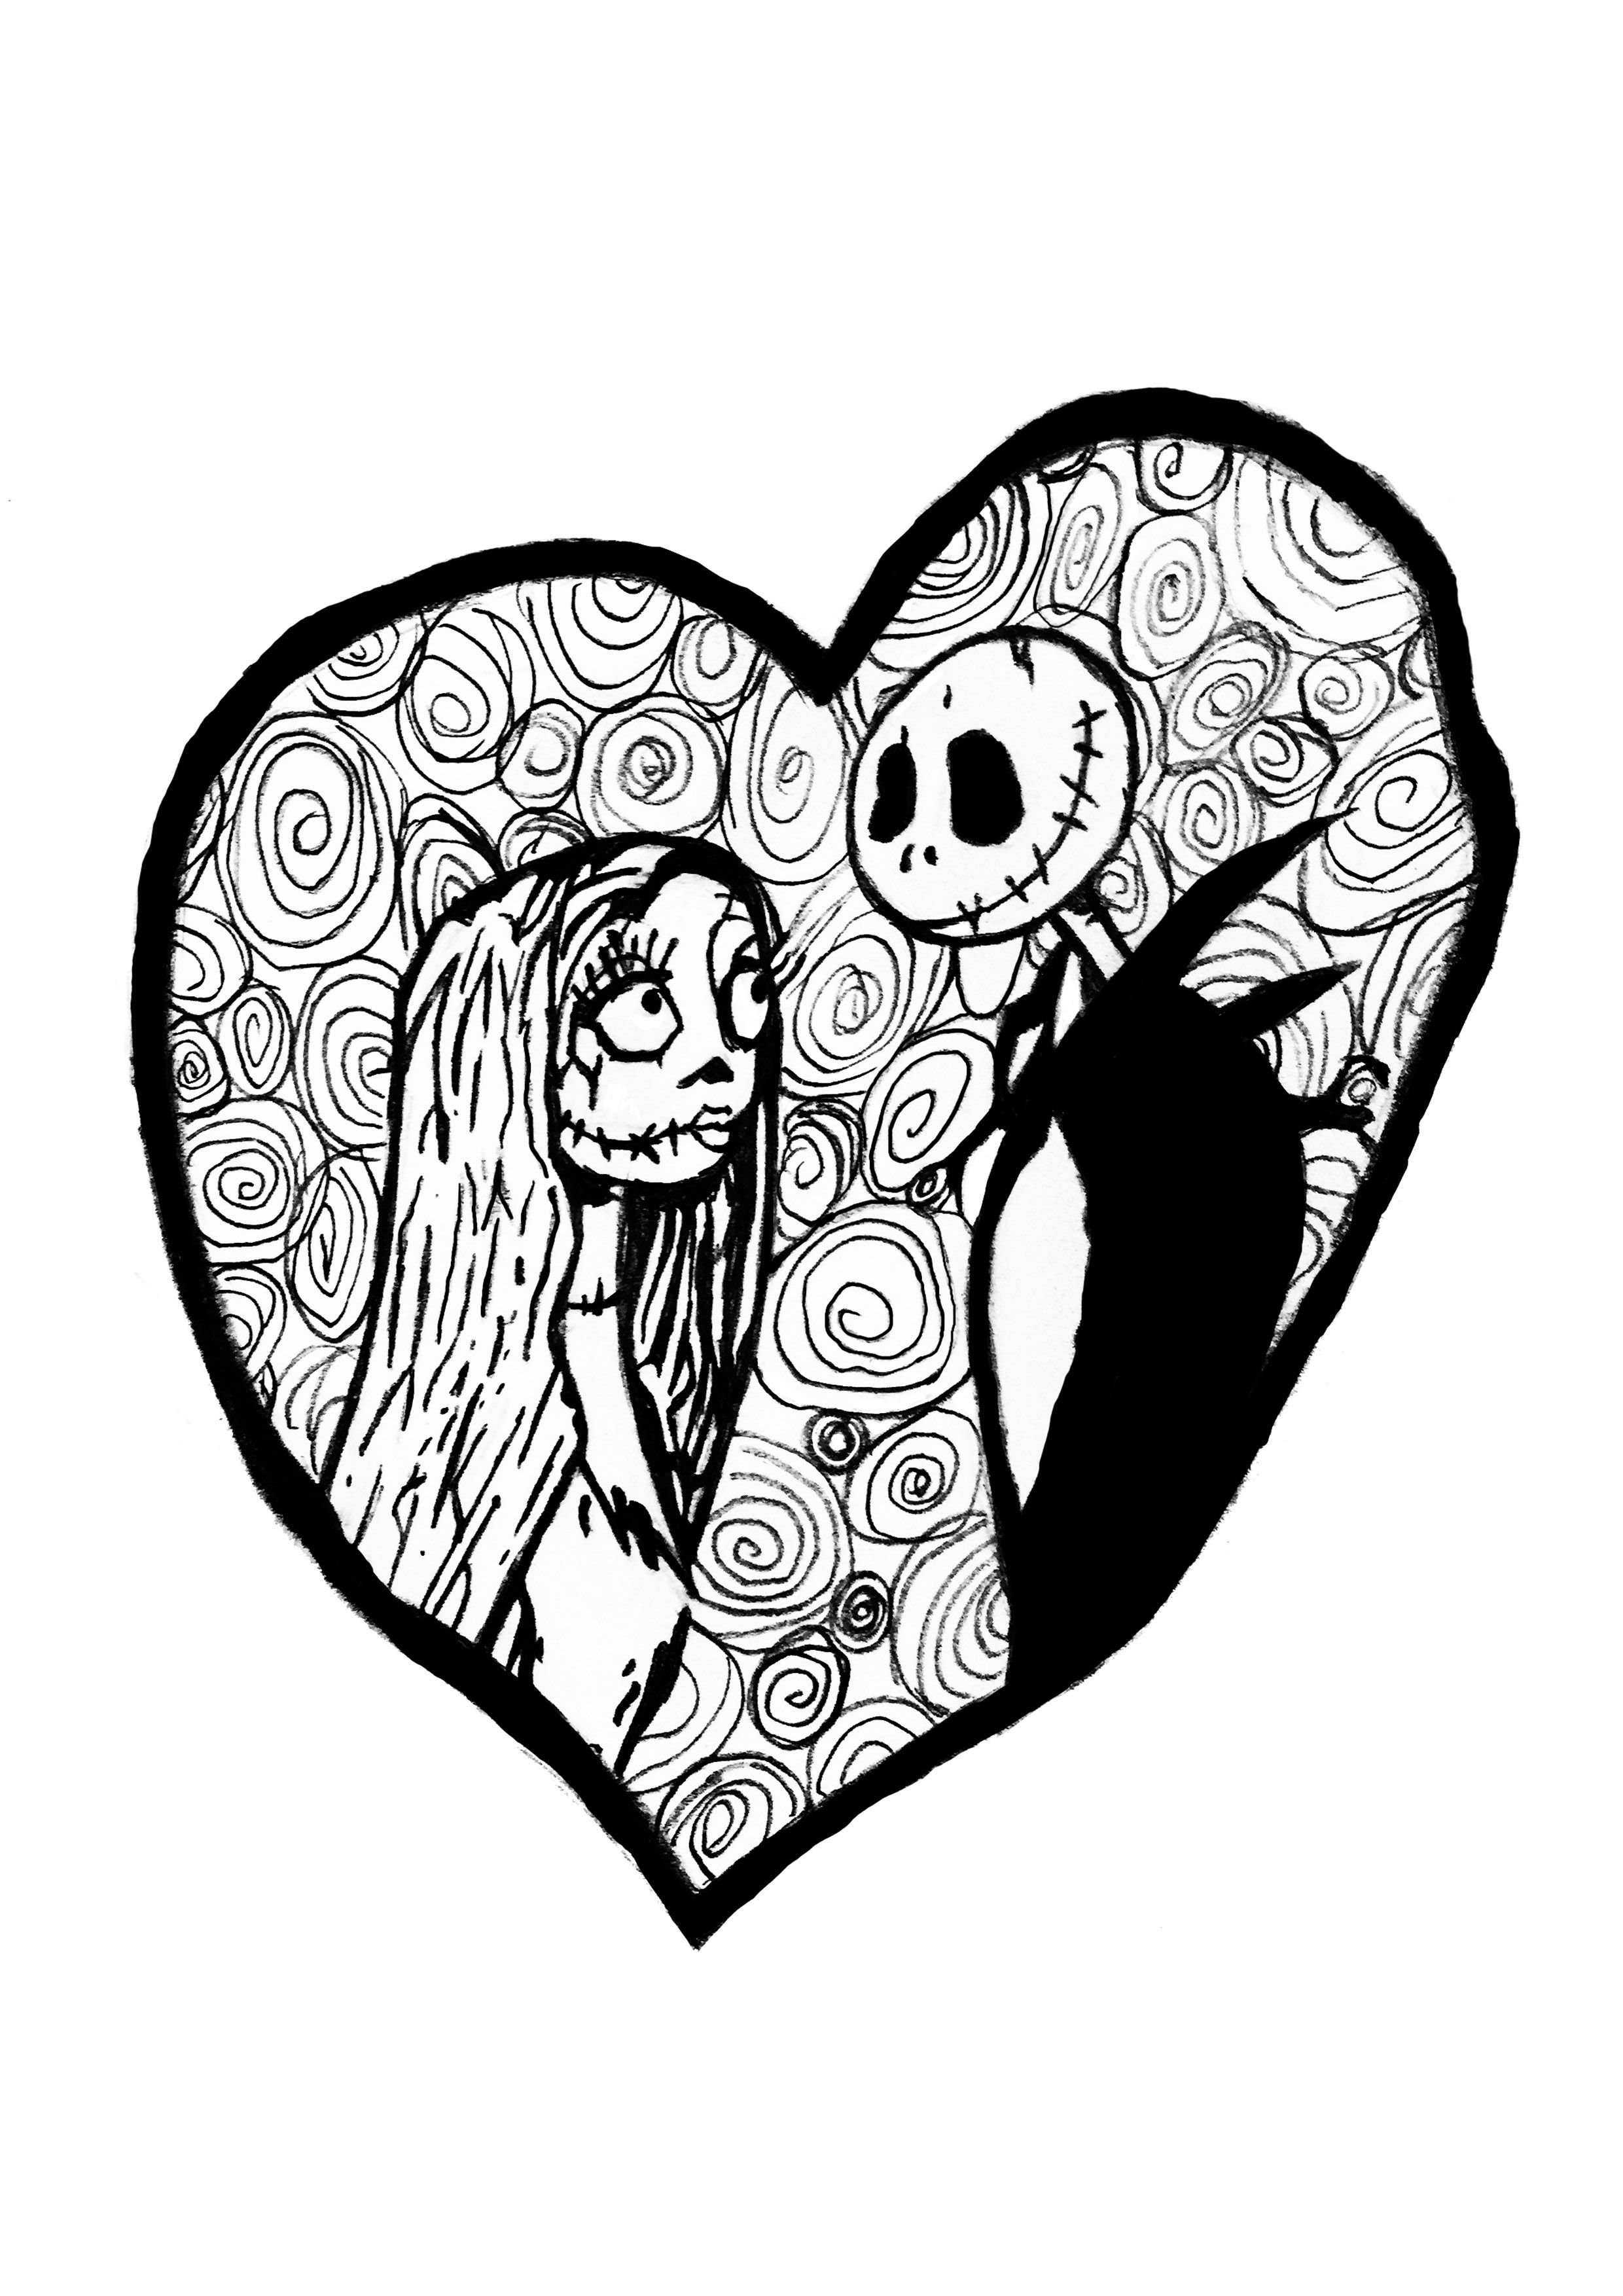 Jack Sally From The Movie Tim Burton S The Nightmare Before Christmas Together In A C Heart Coloring Pages Love Coloring Pages Happy Birthday Coloring Pages